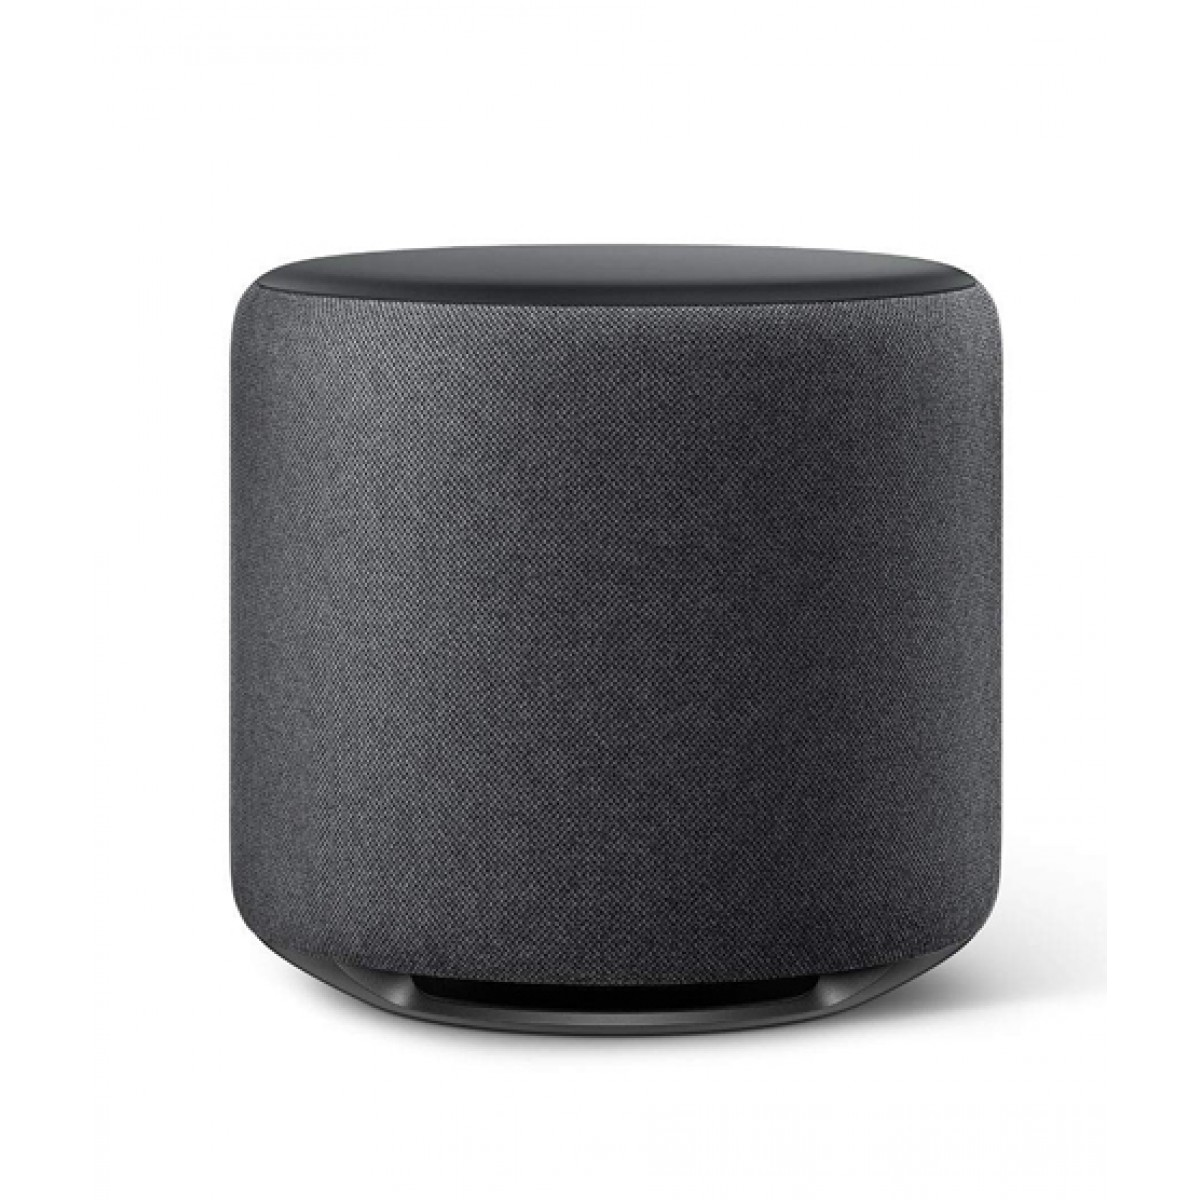 Amazon Echo Sub Wireless Speaker Charcoal